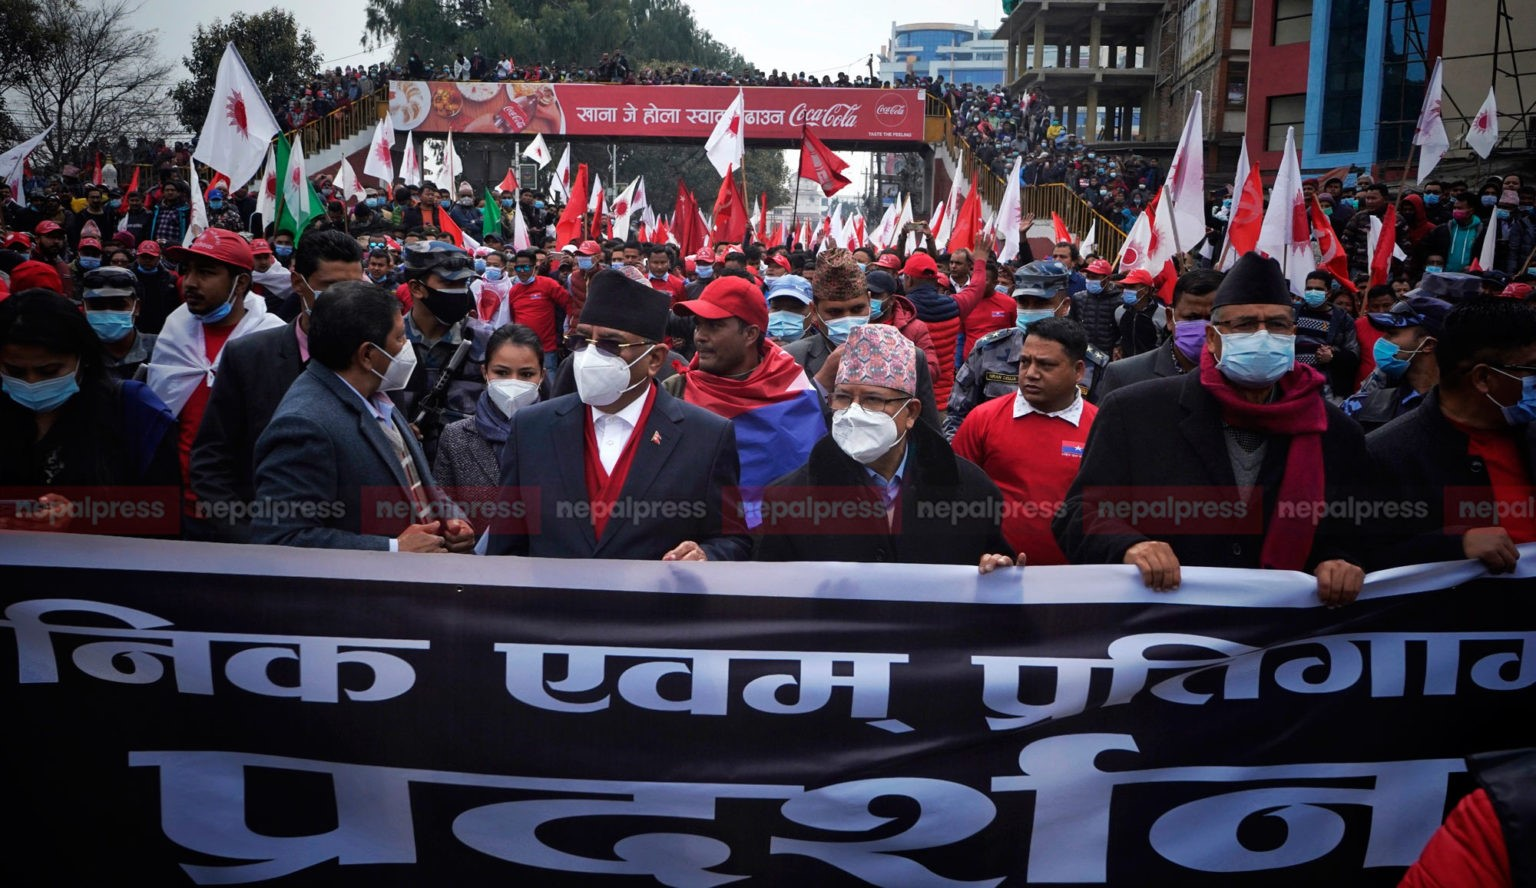 Prachanda-Madhav faction to launch third phase of protests